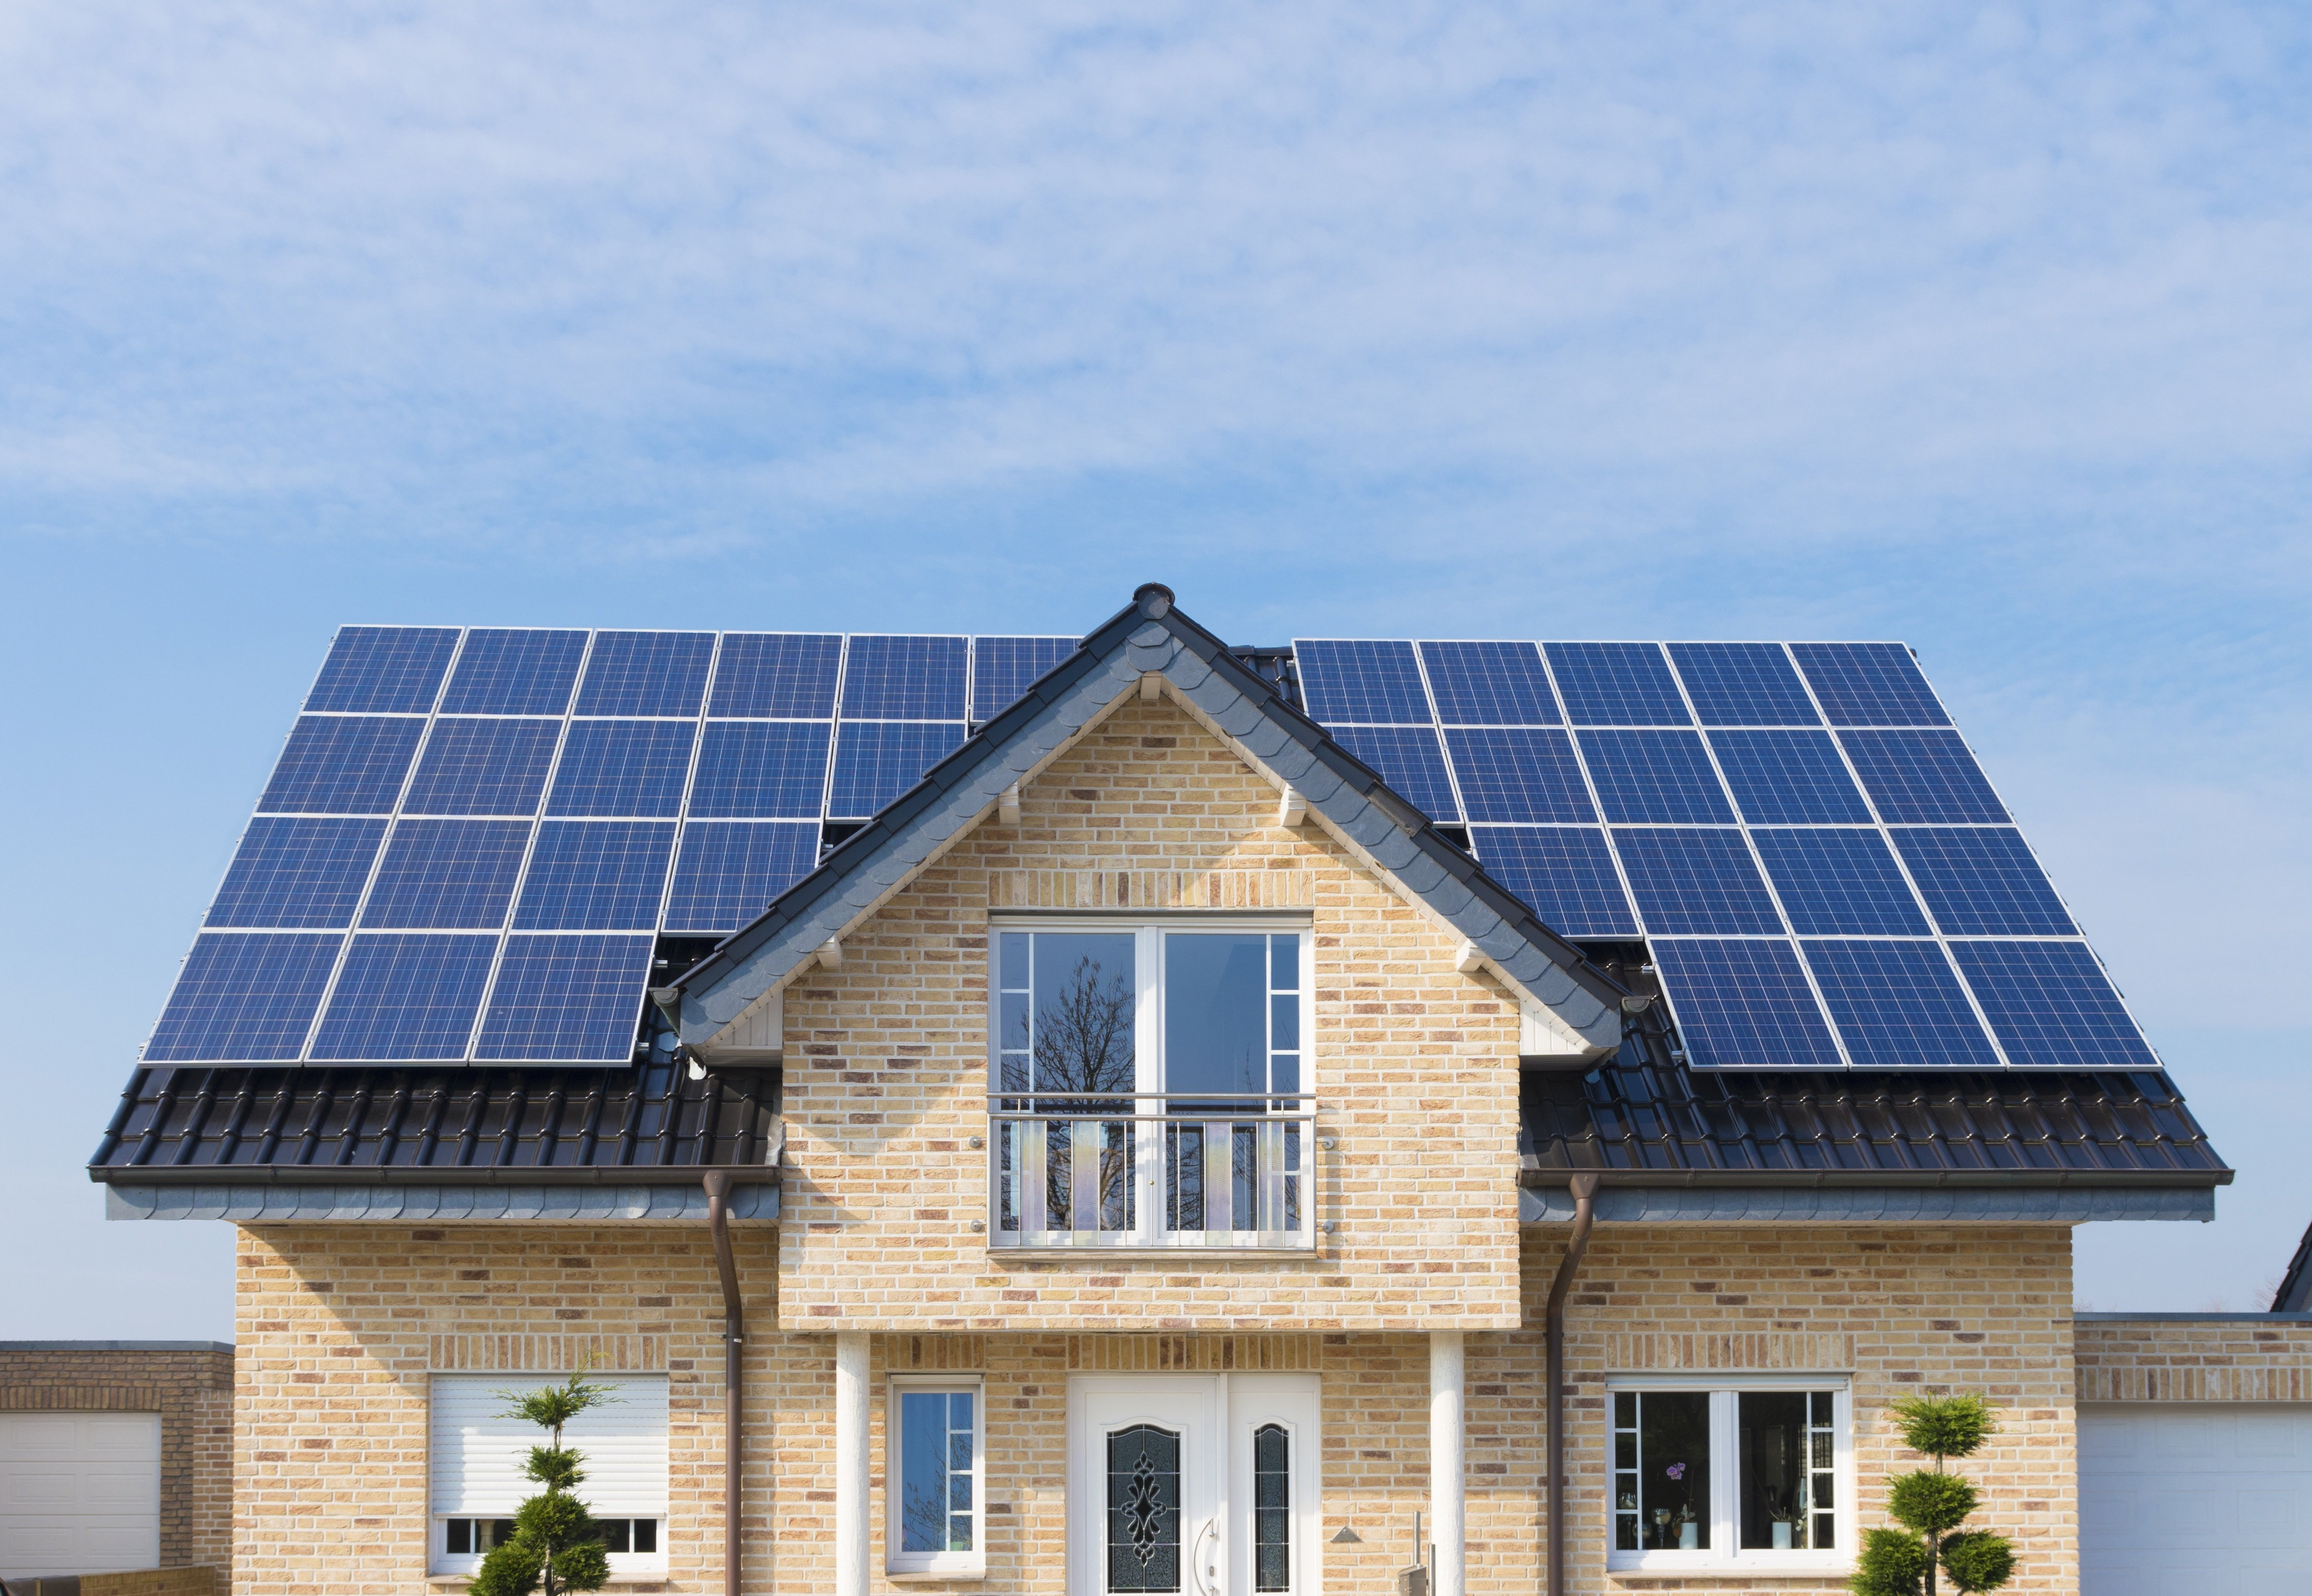 Growing your solar business with financing